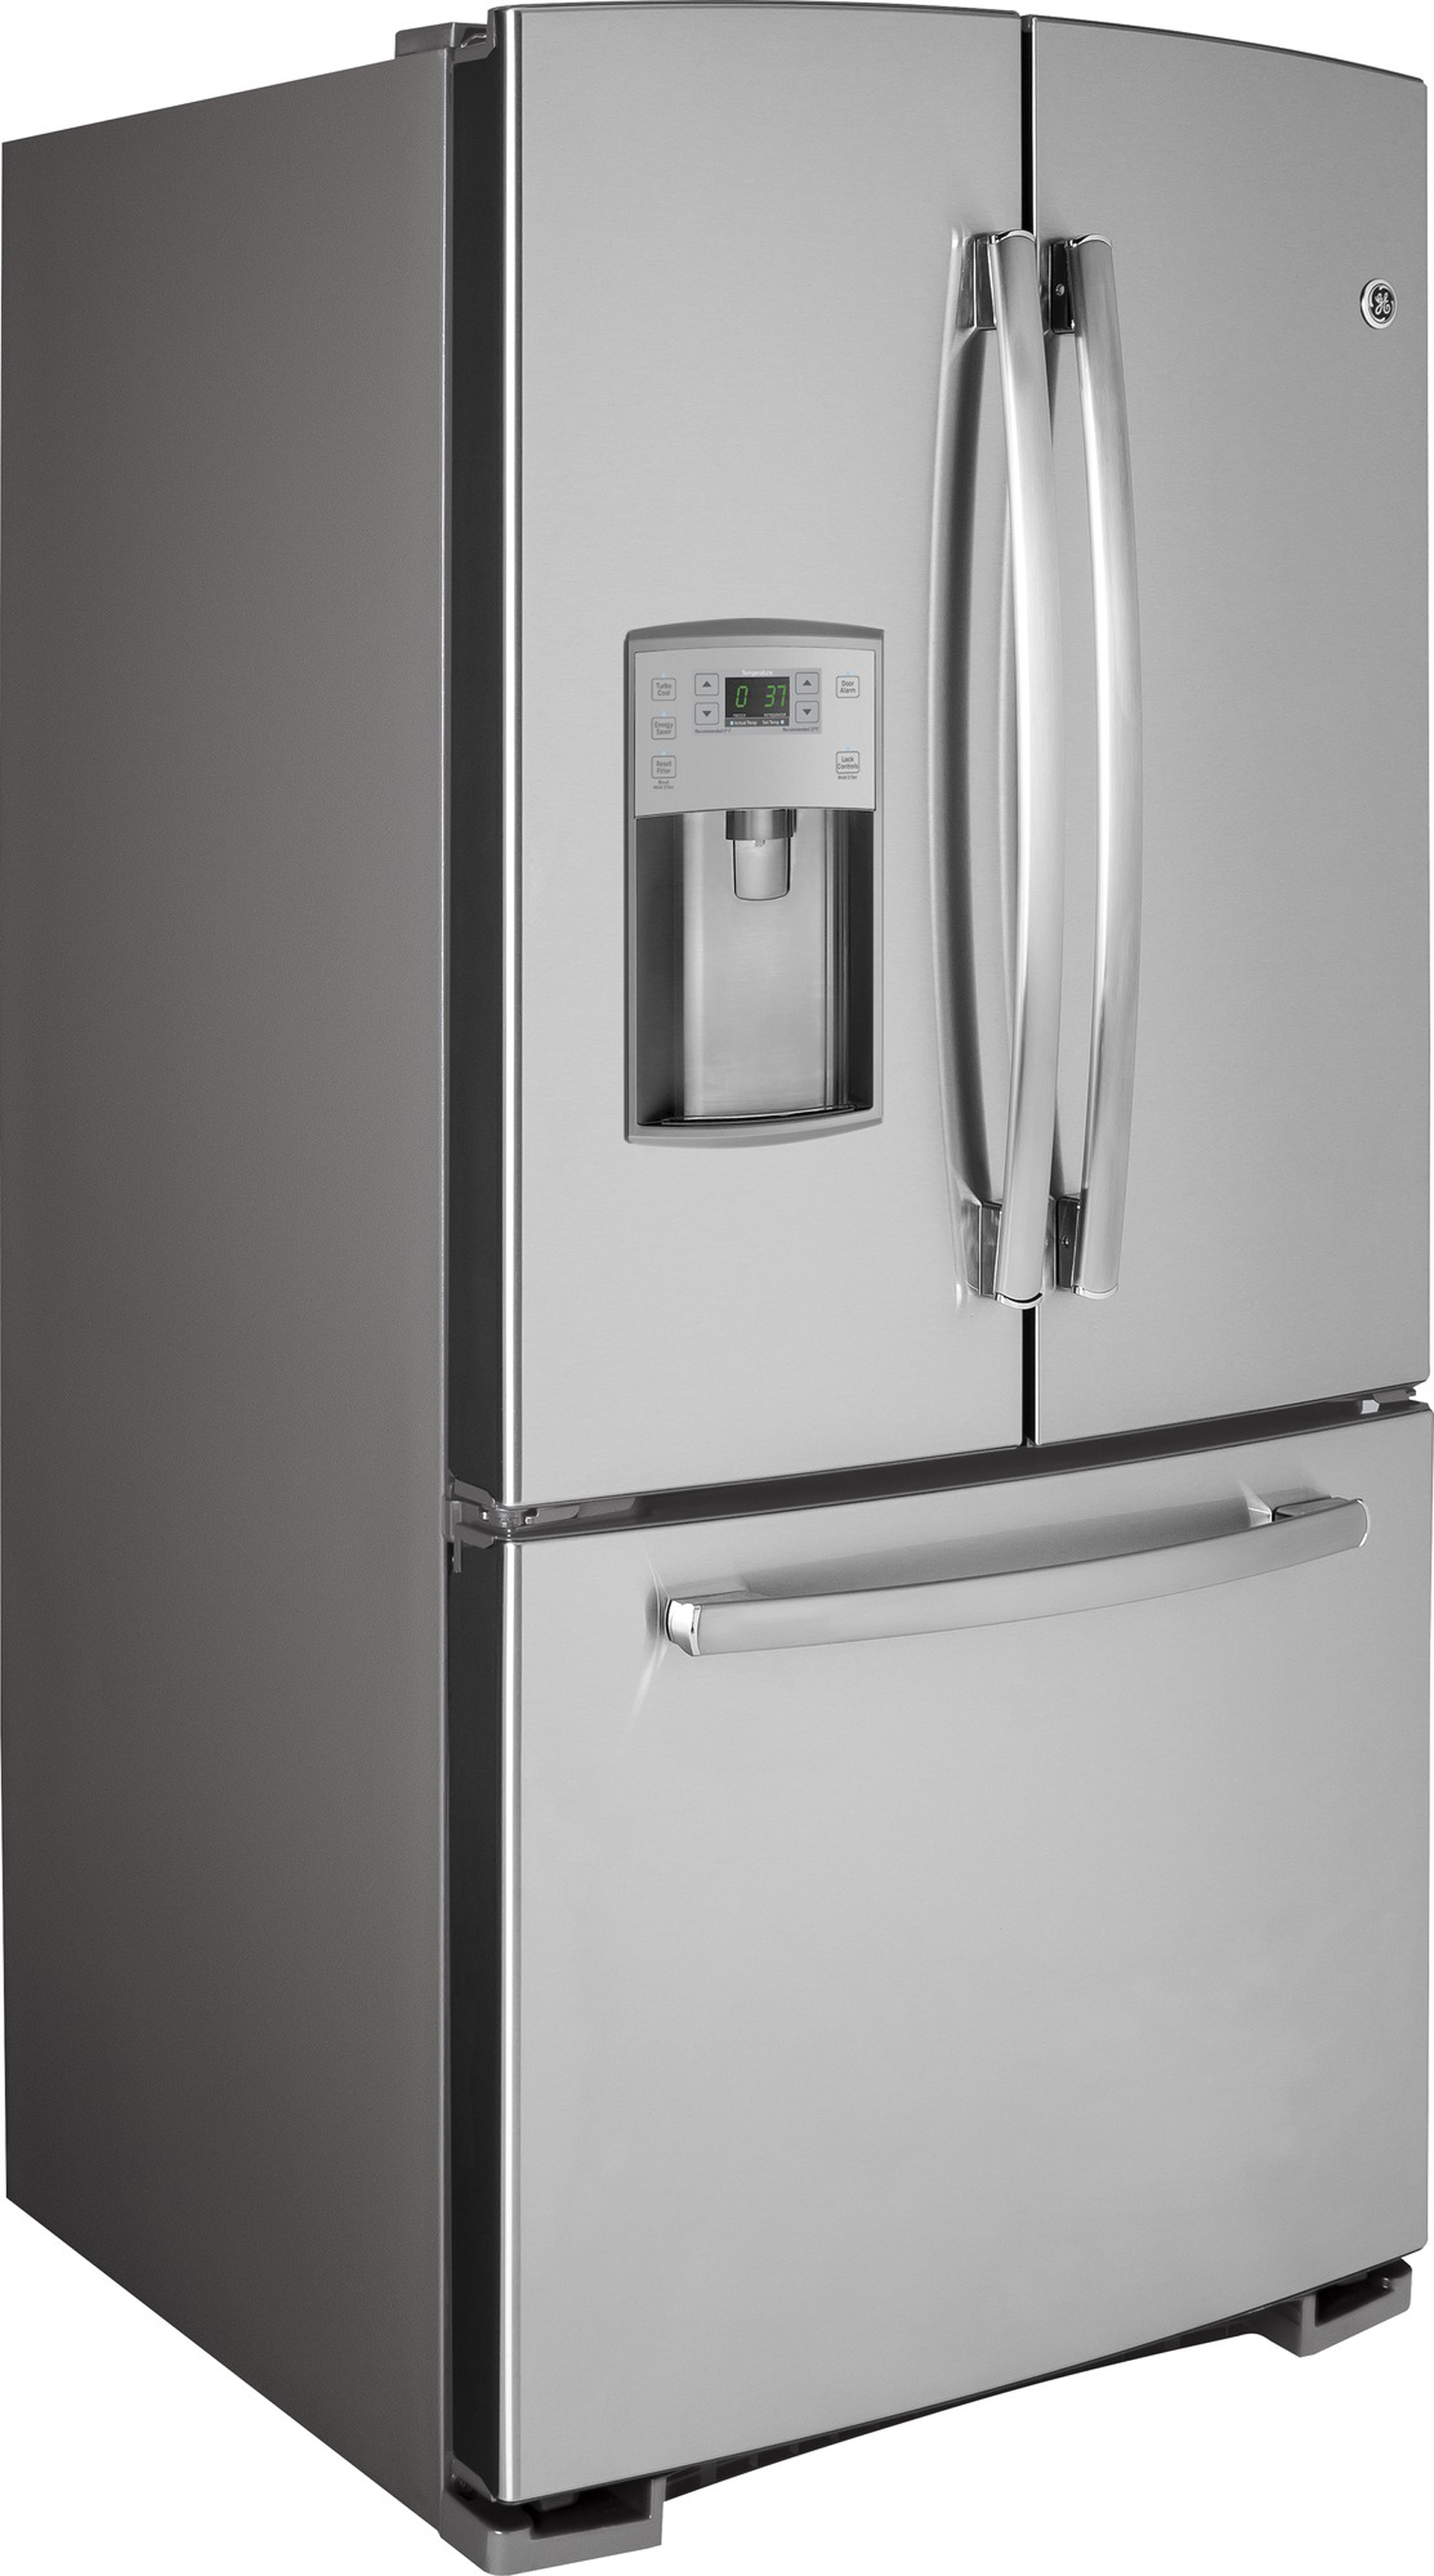 GE Profile PFS23KSHSS 23 cu. ft. French-Door Refrigerator - Stainless Steel